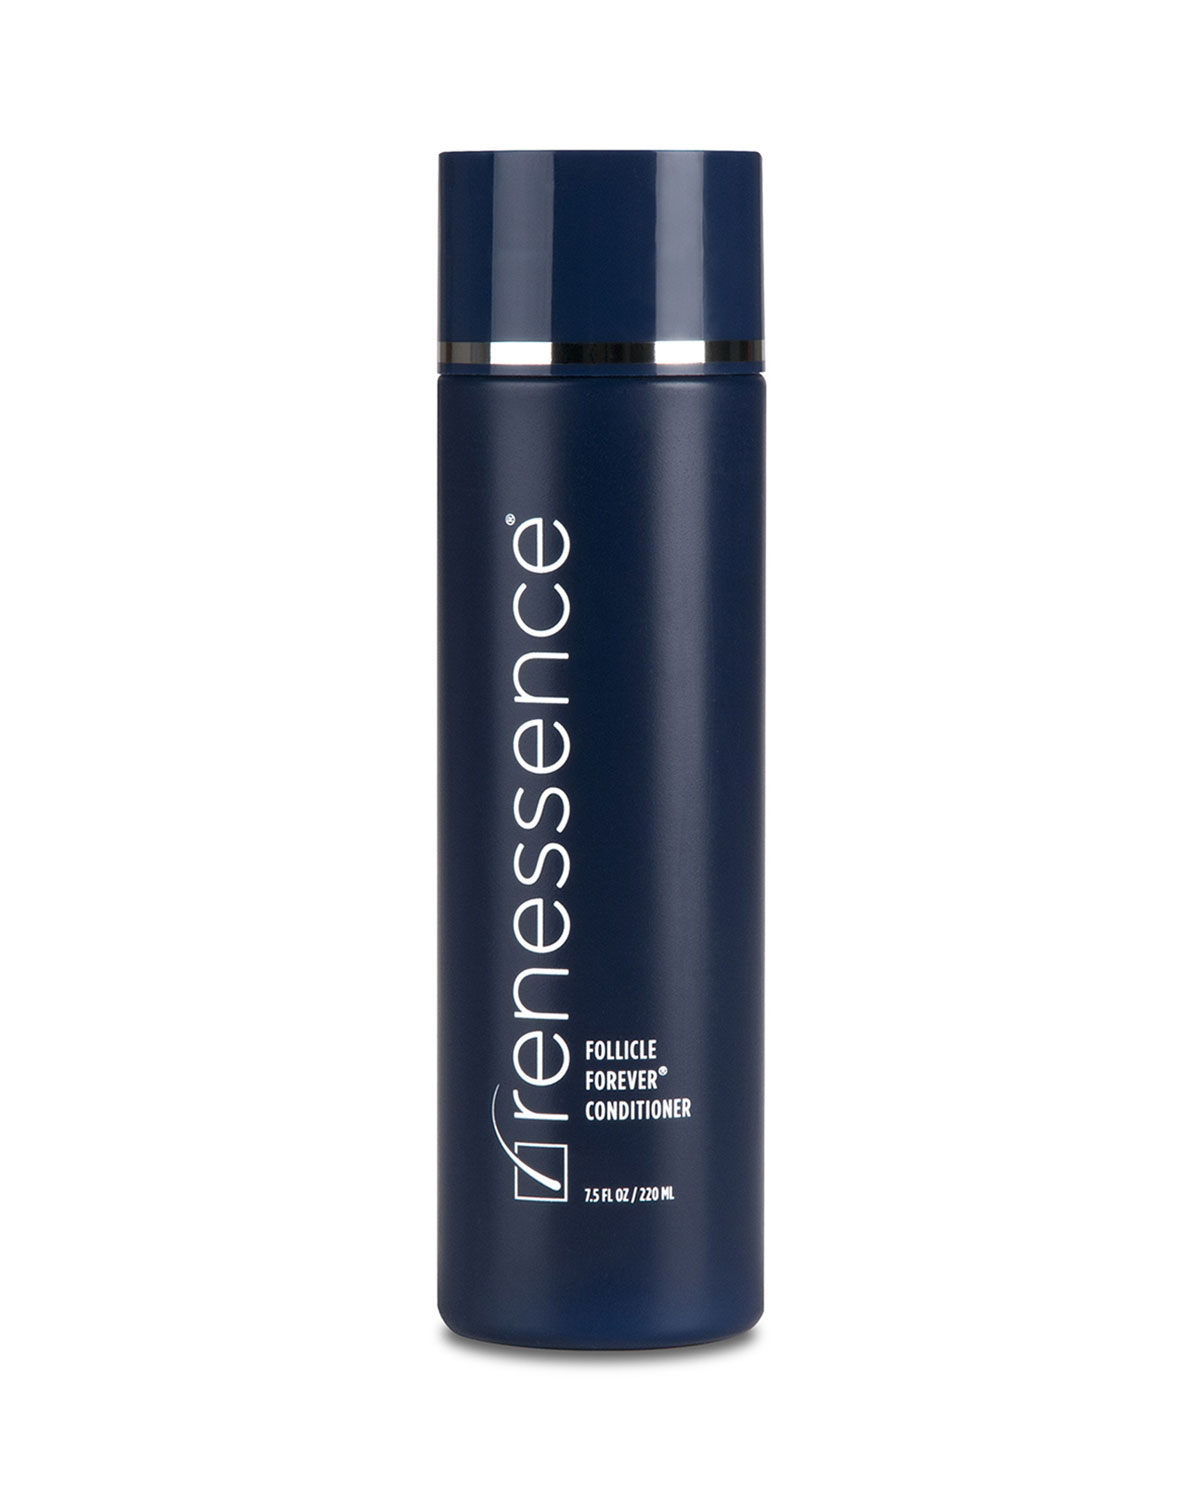 RENESSENCE Follicle Forever Thickening Conditioner, 7.5 Oz./ 221 Ml